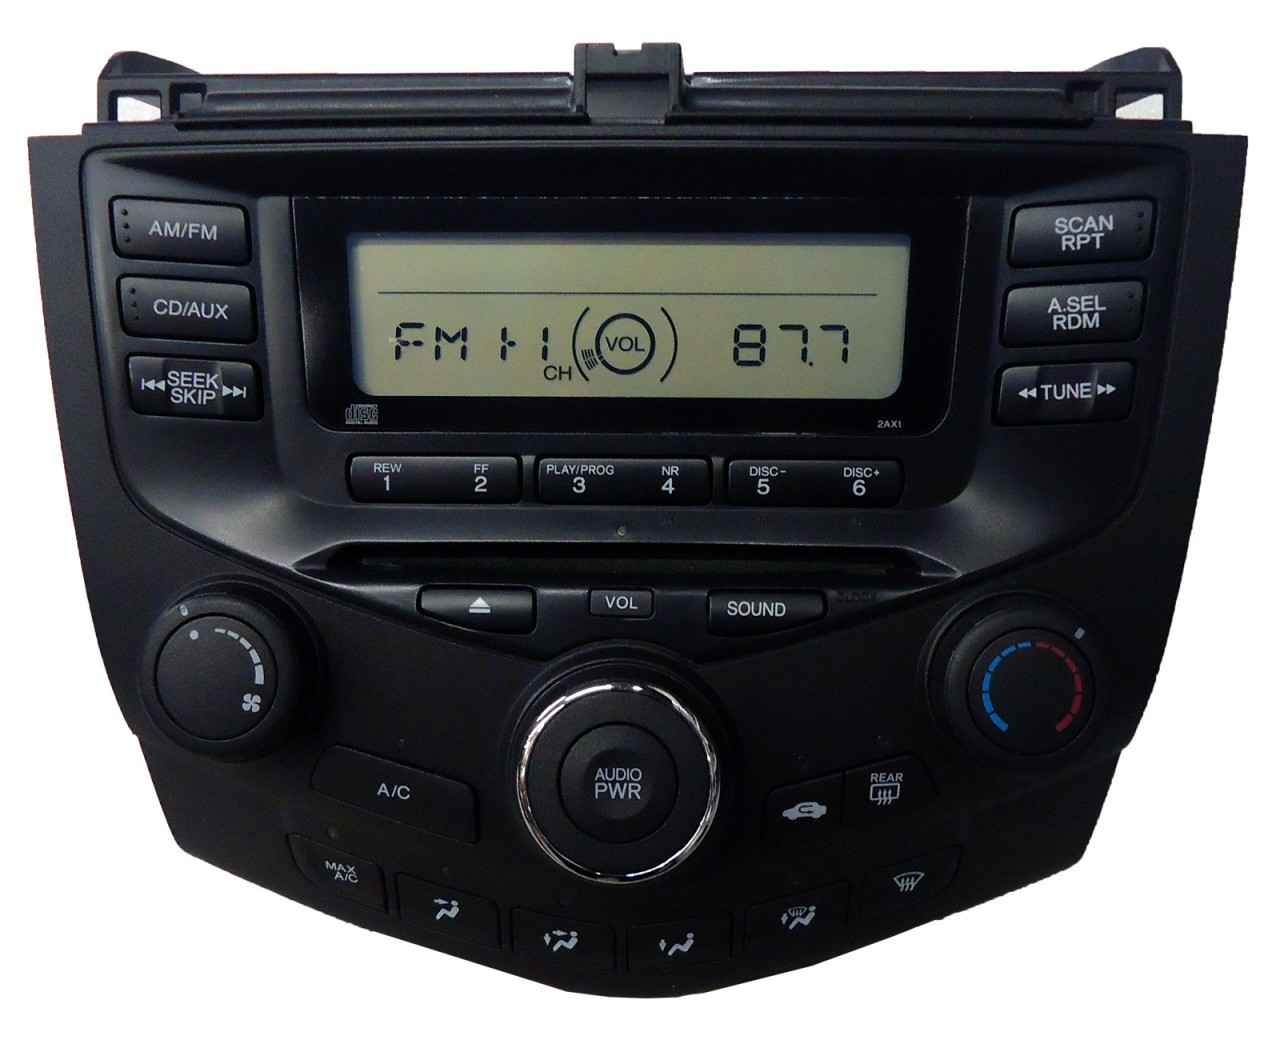 Chrysler Radio Wiring Diagram Together With 2005 Chrysler Pacifica